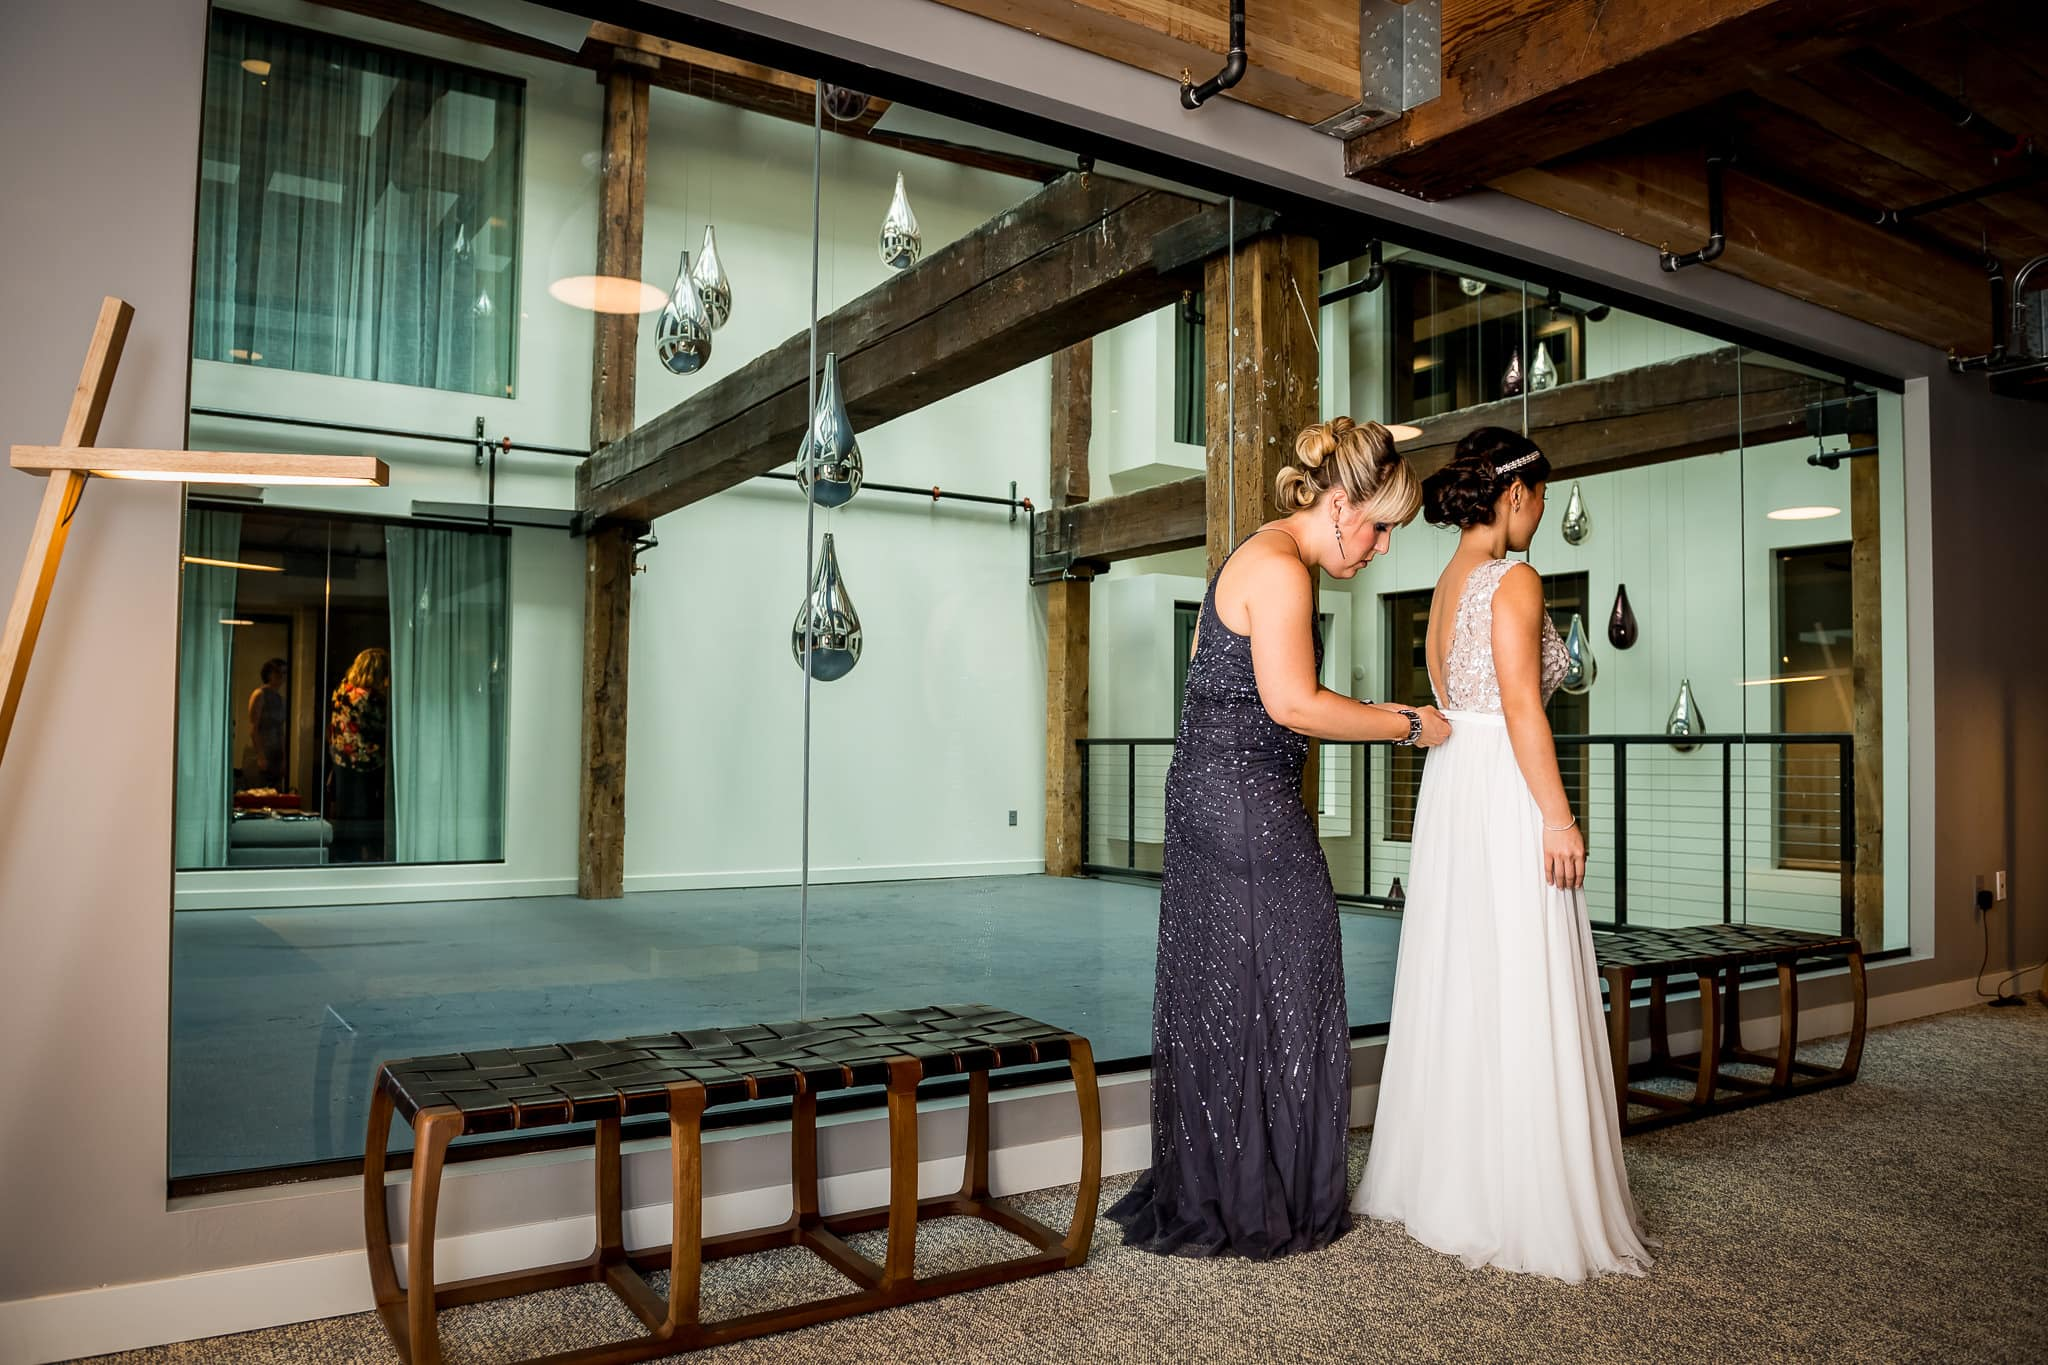 Bride getting into her dress at the Hewing Hotel